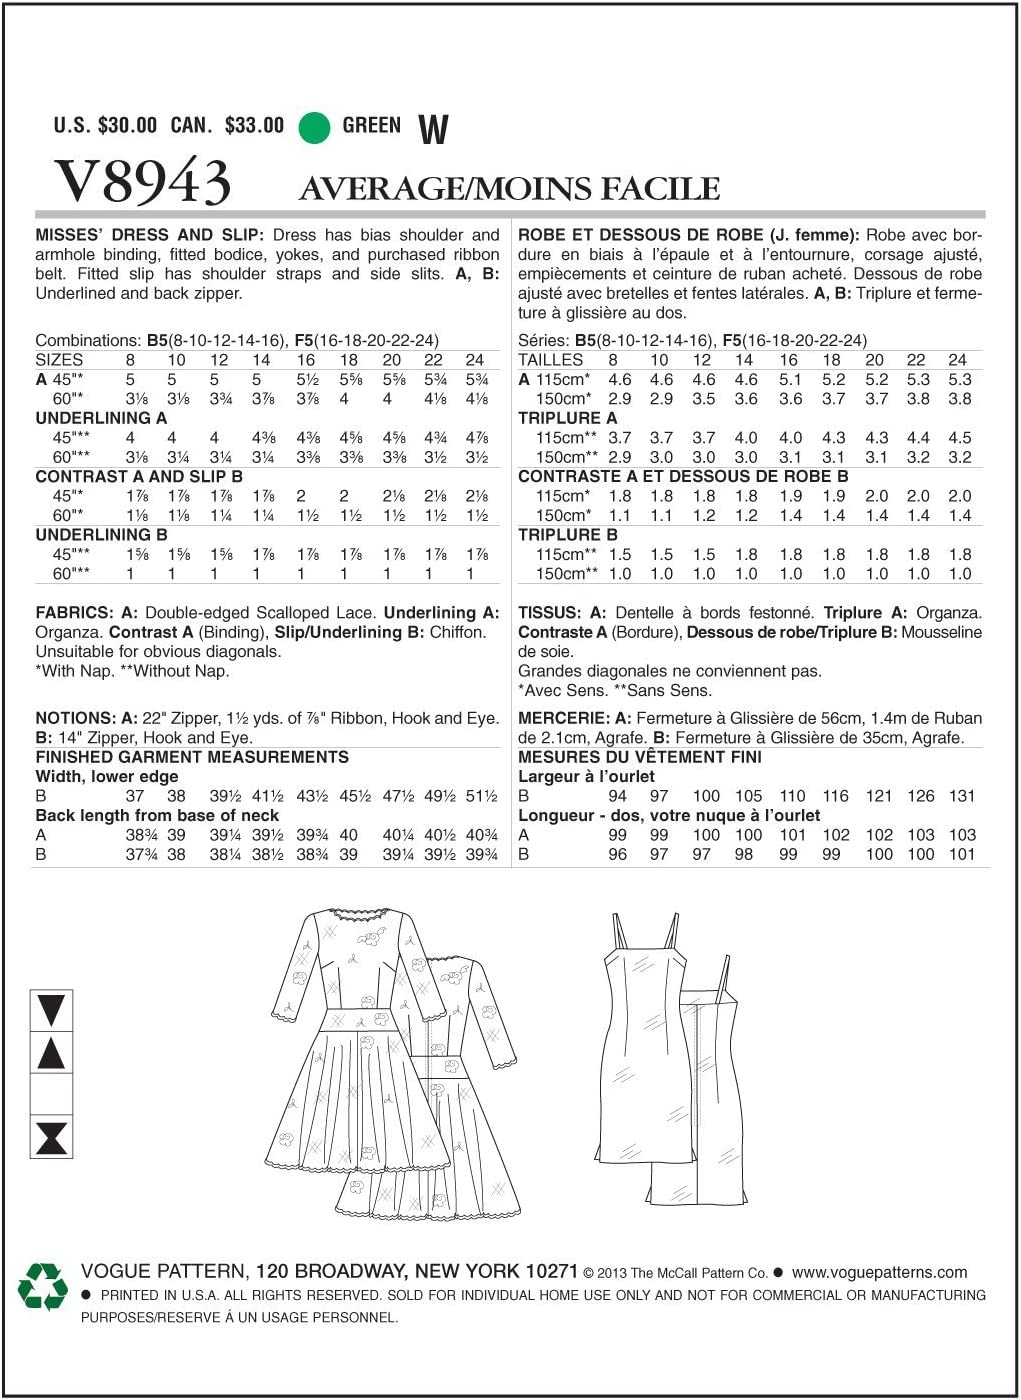 Vogue Patterns V8943 Misses Dress and Slip Sewing Template Size B5